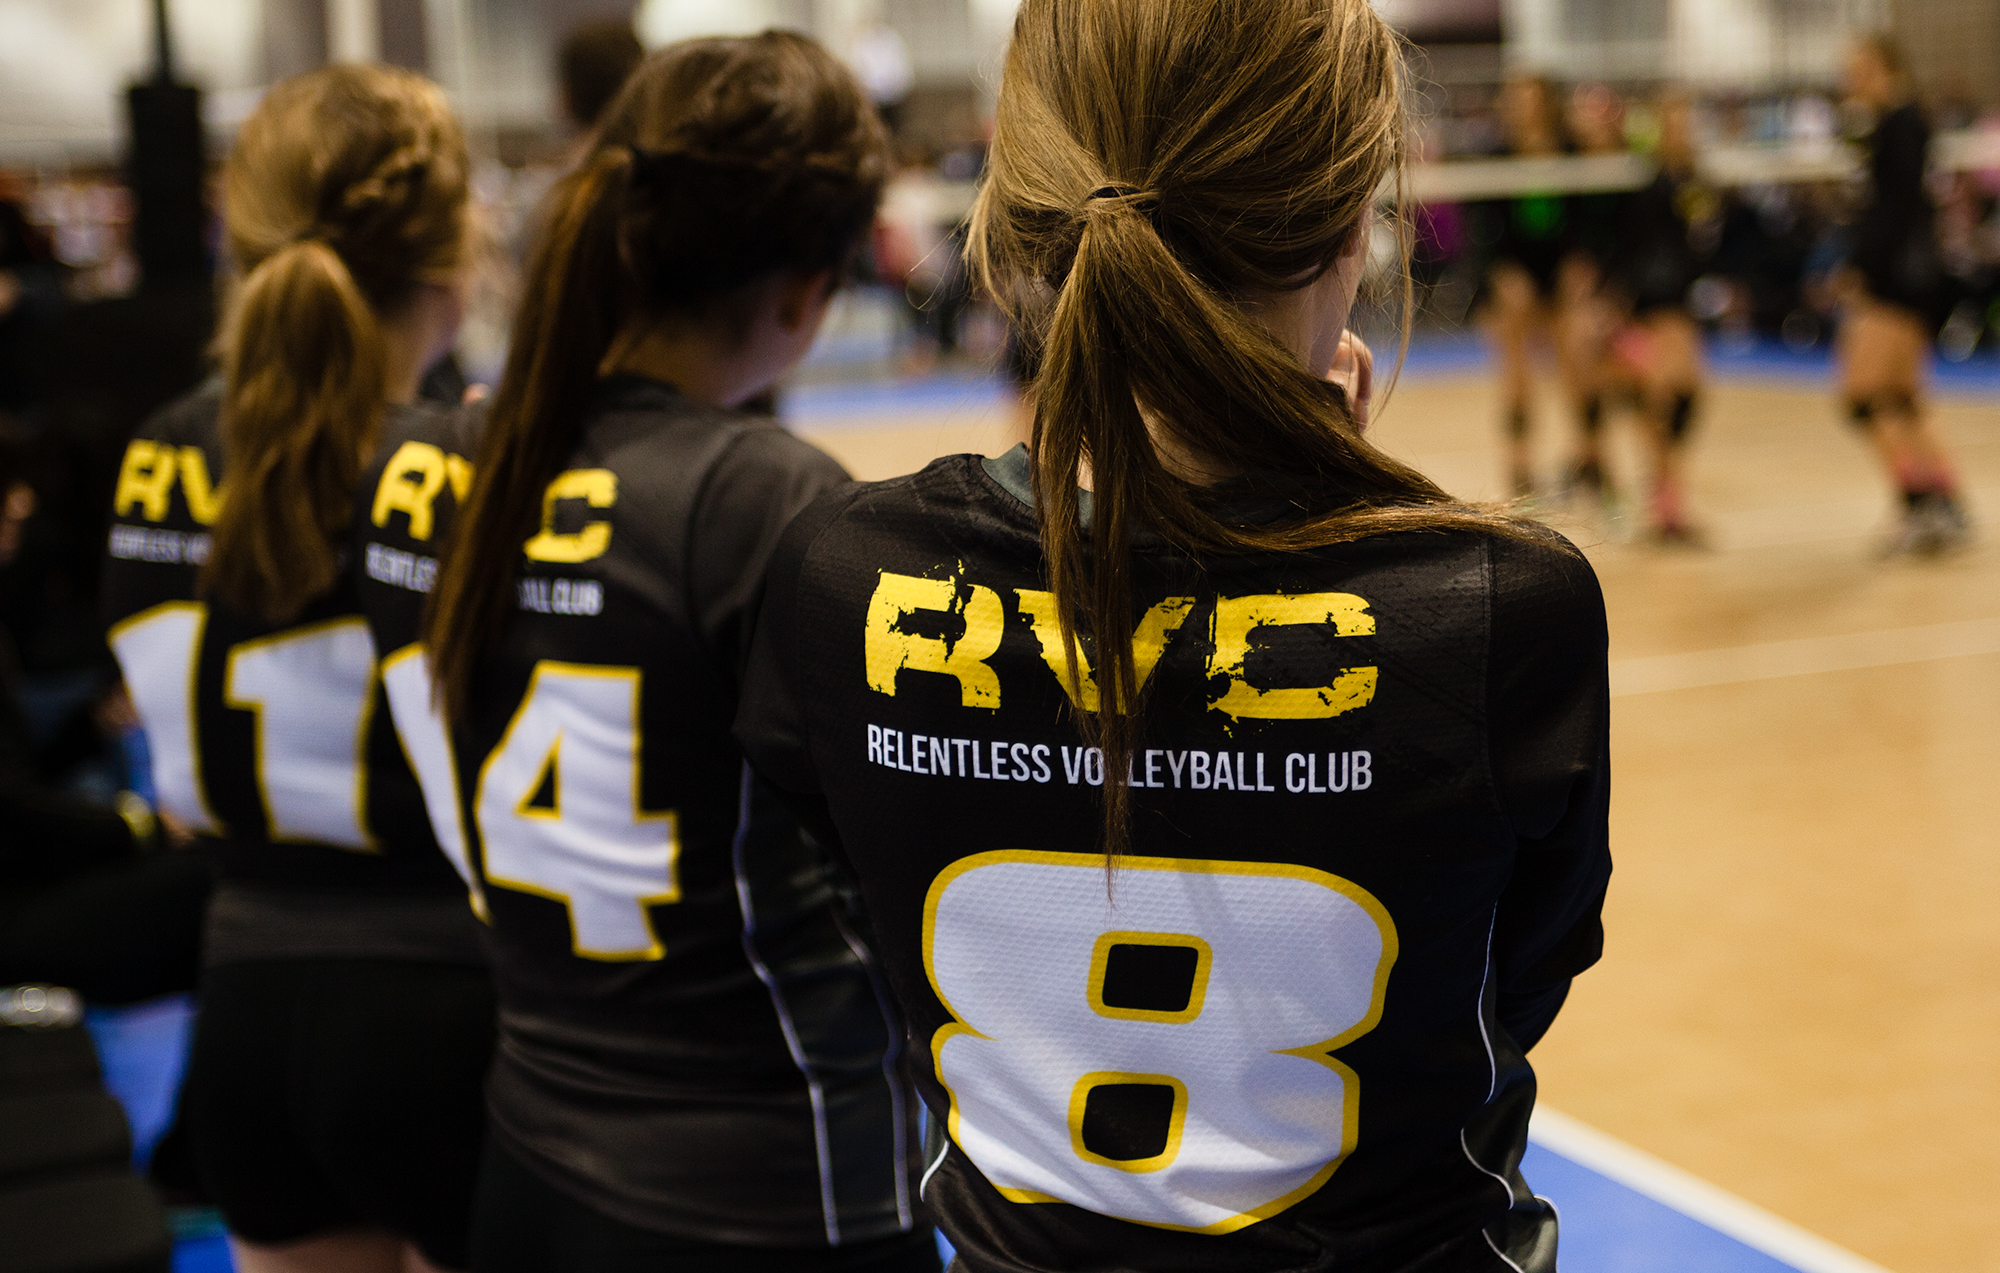 What You Need To Know Before Joining A Volleyball Club